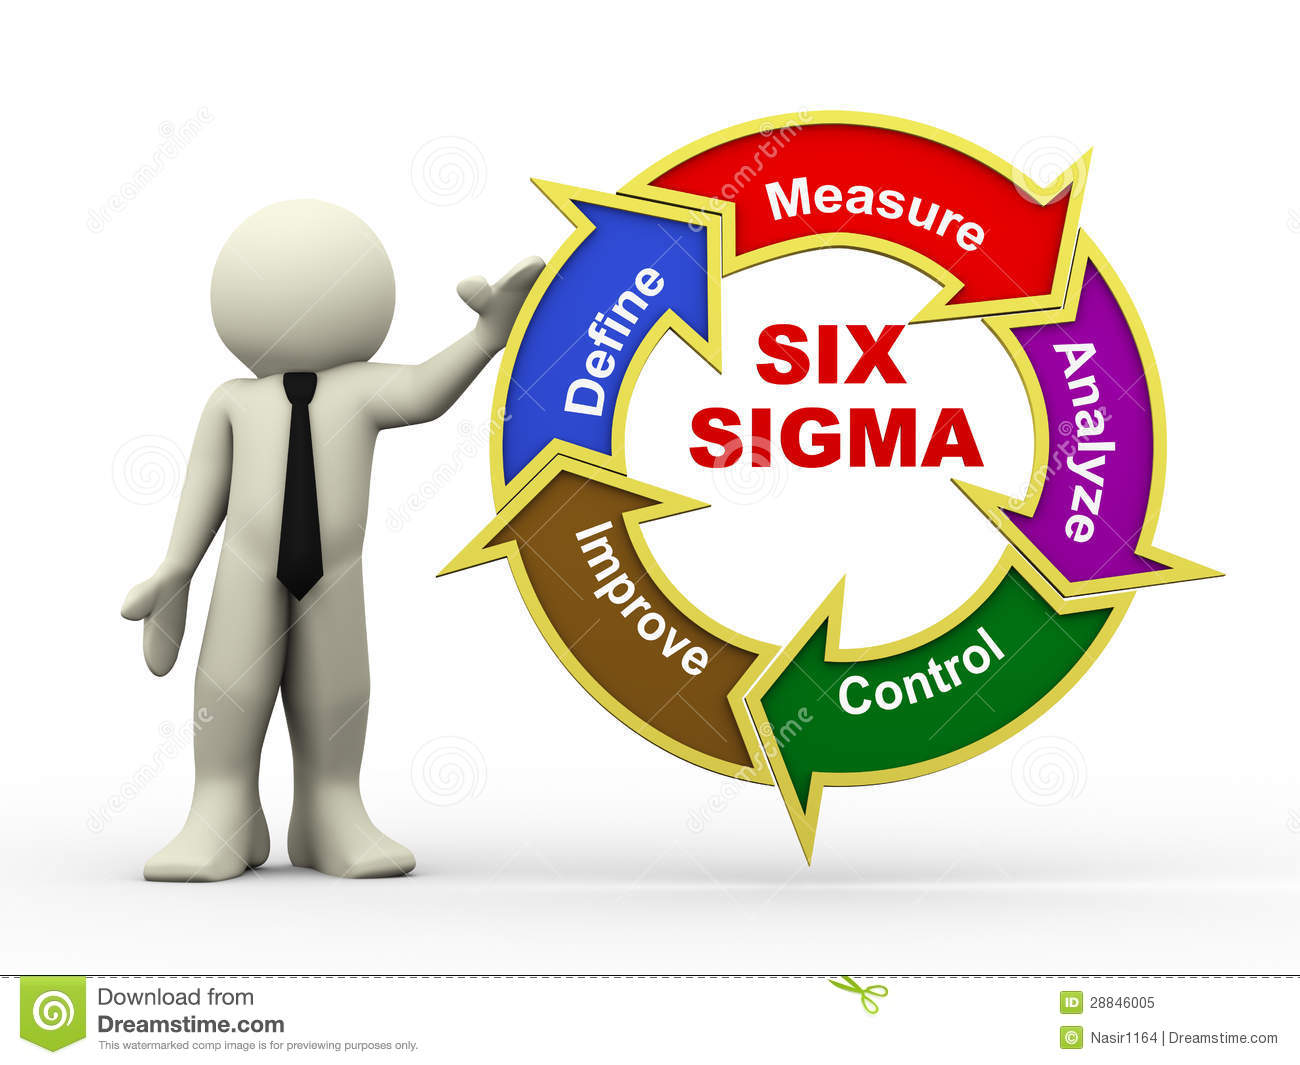 sigma six 3d flowchart royalty businessman dmaic ebp research illustration ai qi difference presenting circular human character preview